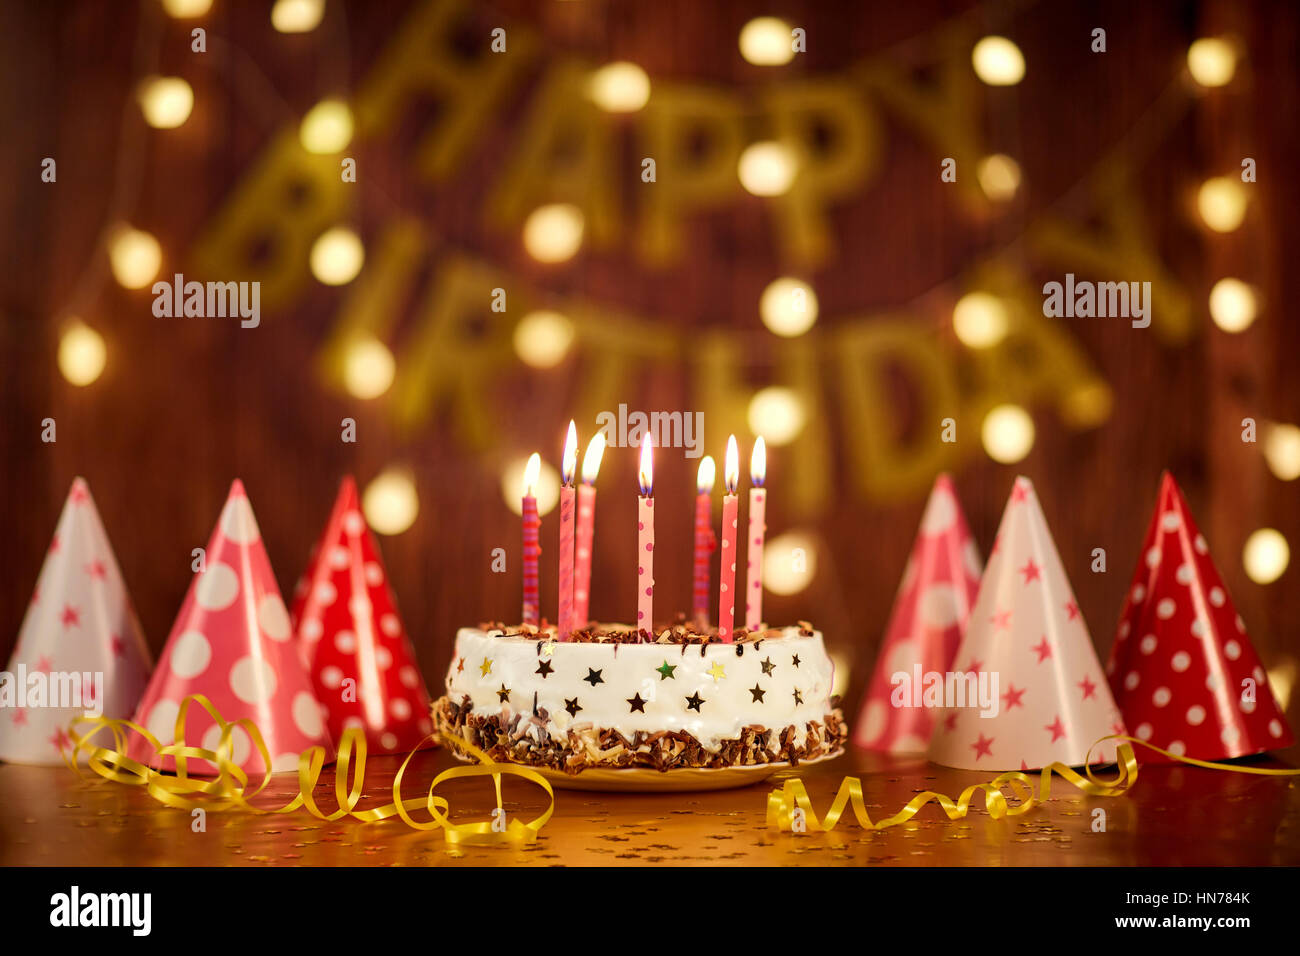 Candles Happy Birthday Cake Hd Wallpaper Wallpapers Quality